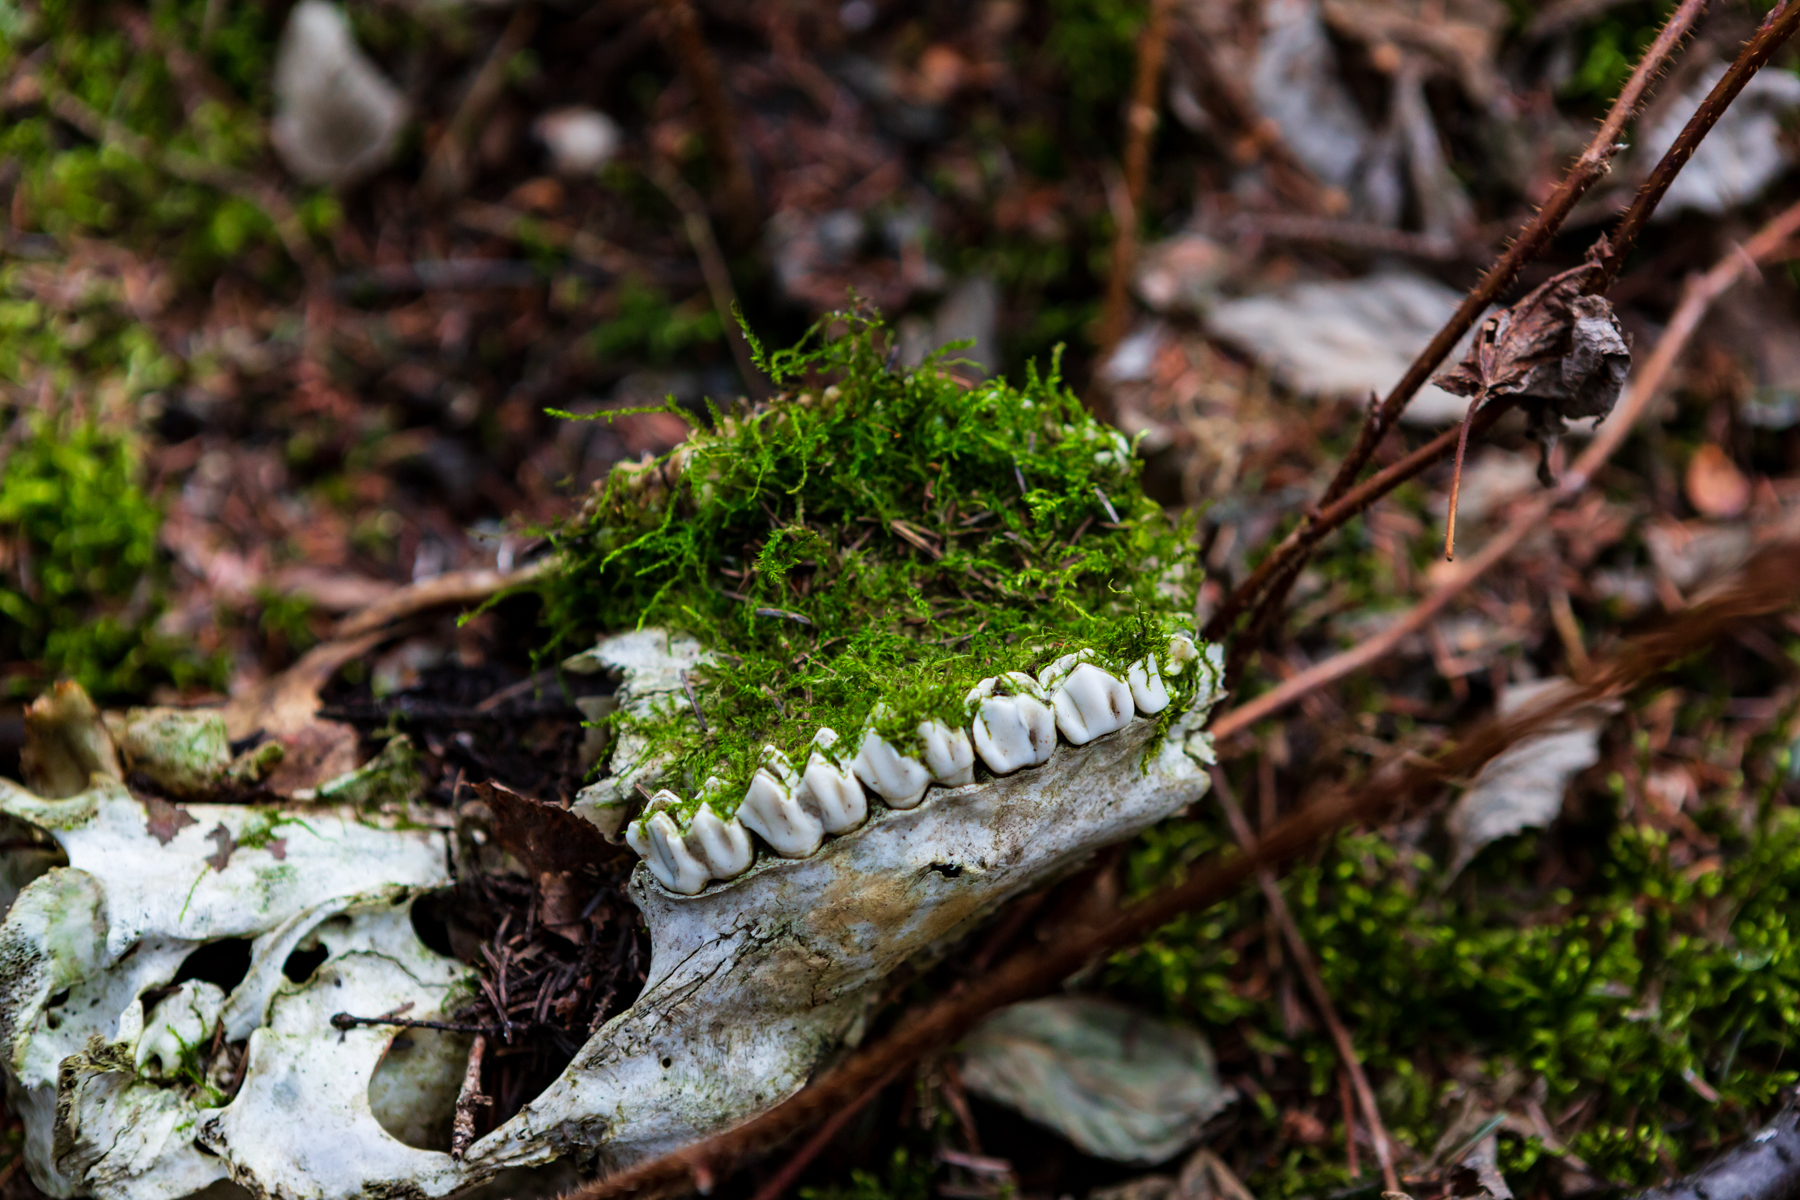 skull upside down with moss growing on roof of mouth